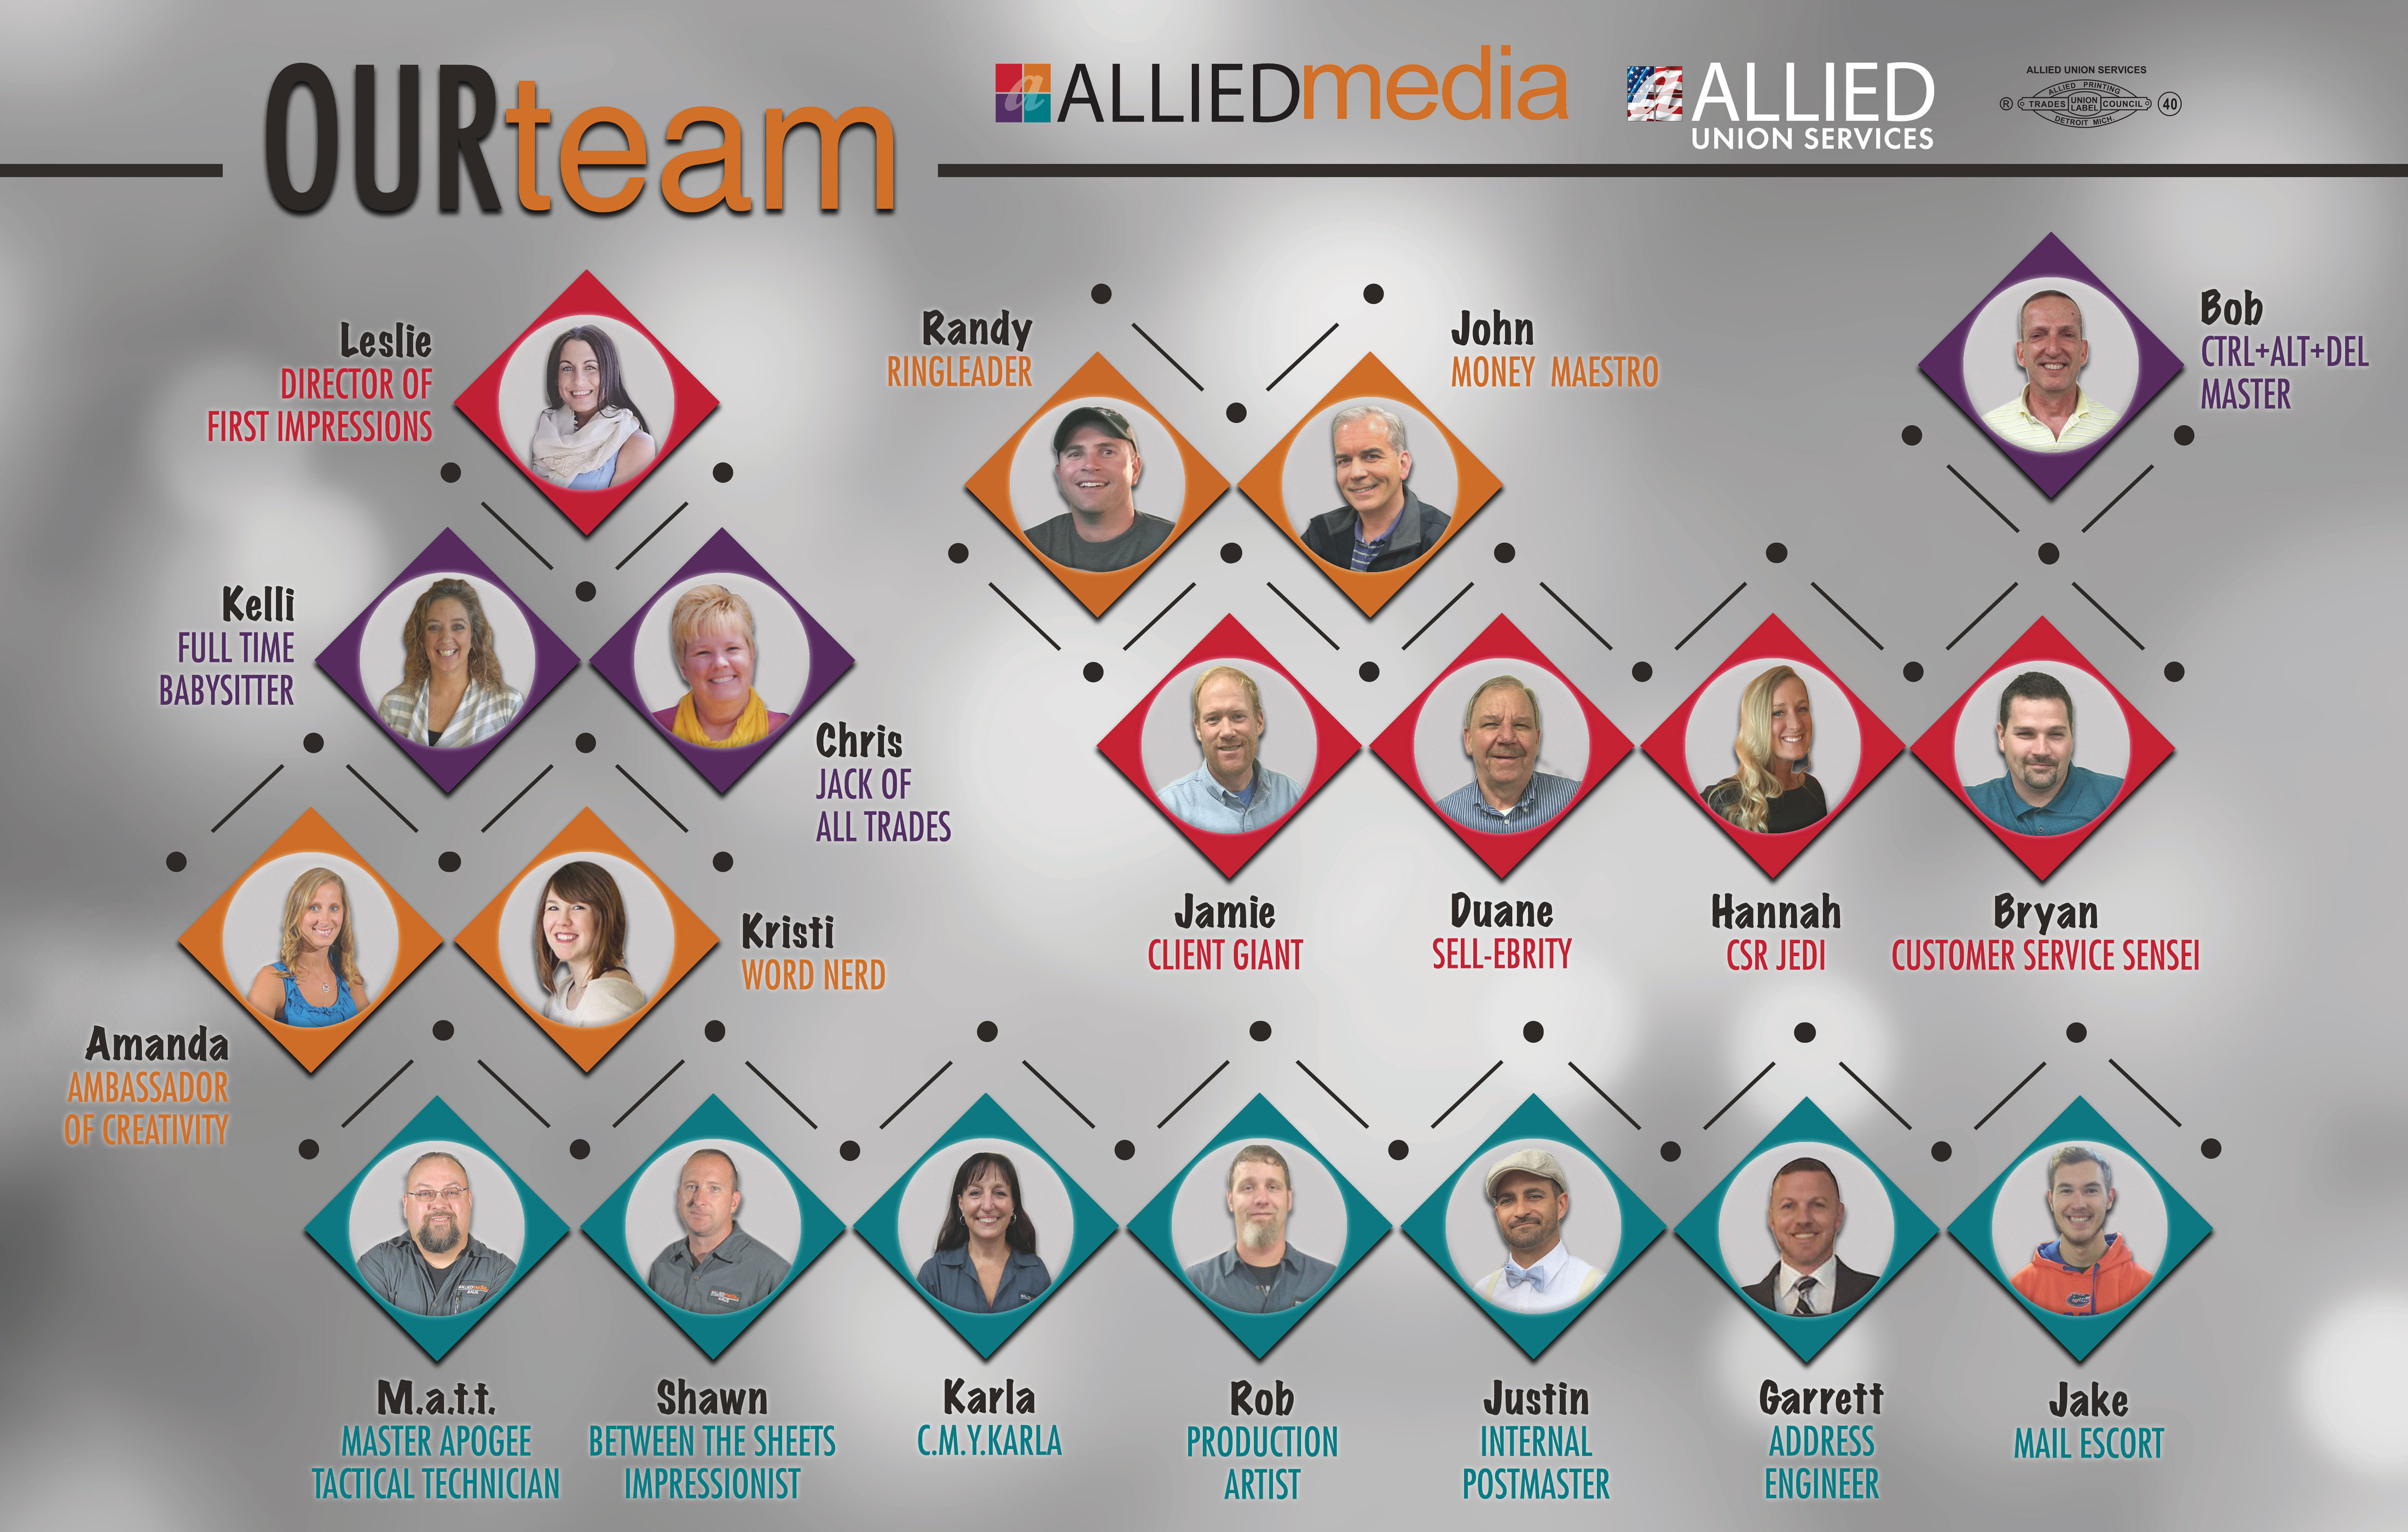 Meet the team of AlliedMedia - put a face to the voice!